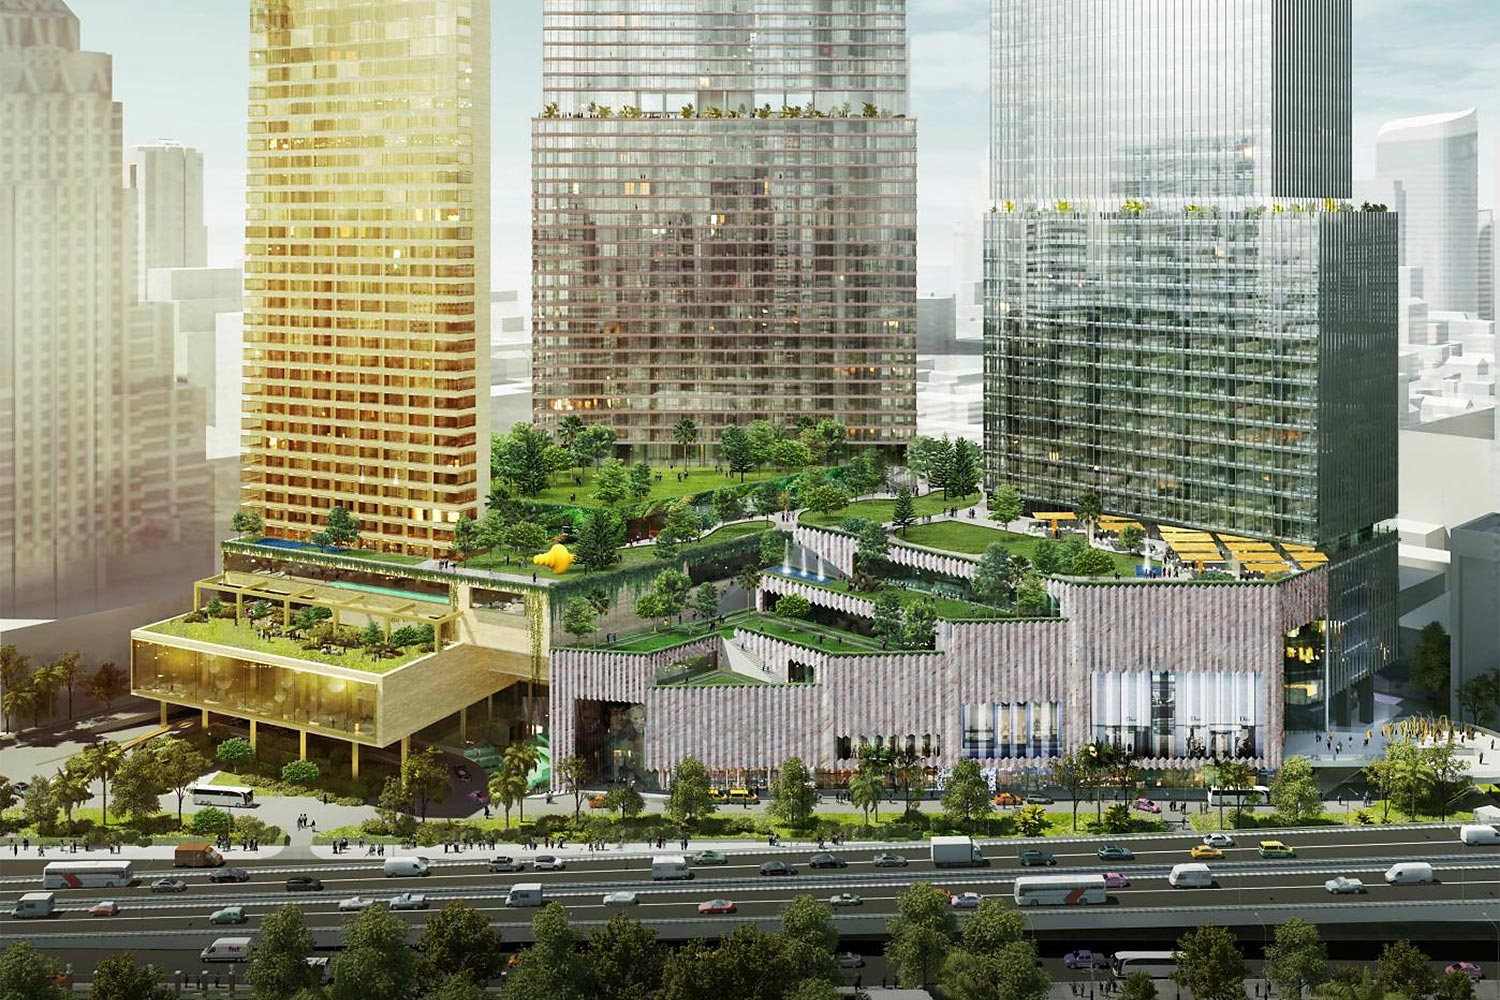 An artist's impression of Dusit Central Park which is located in the heart of the city.